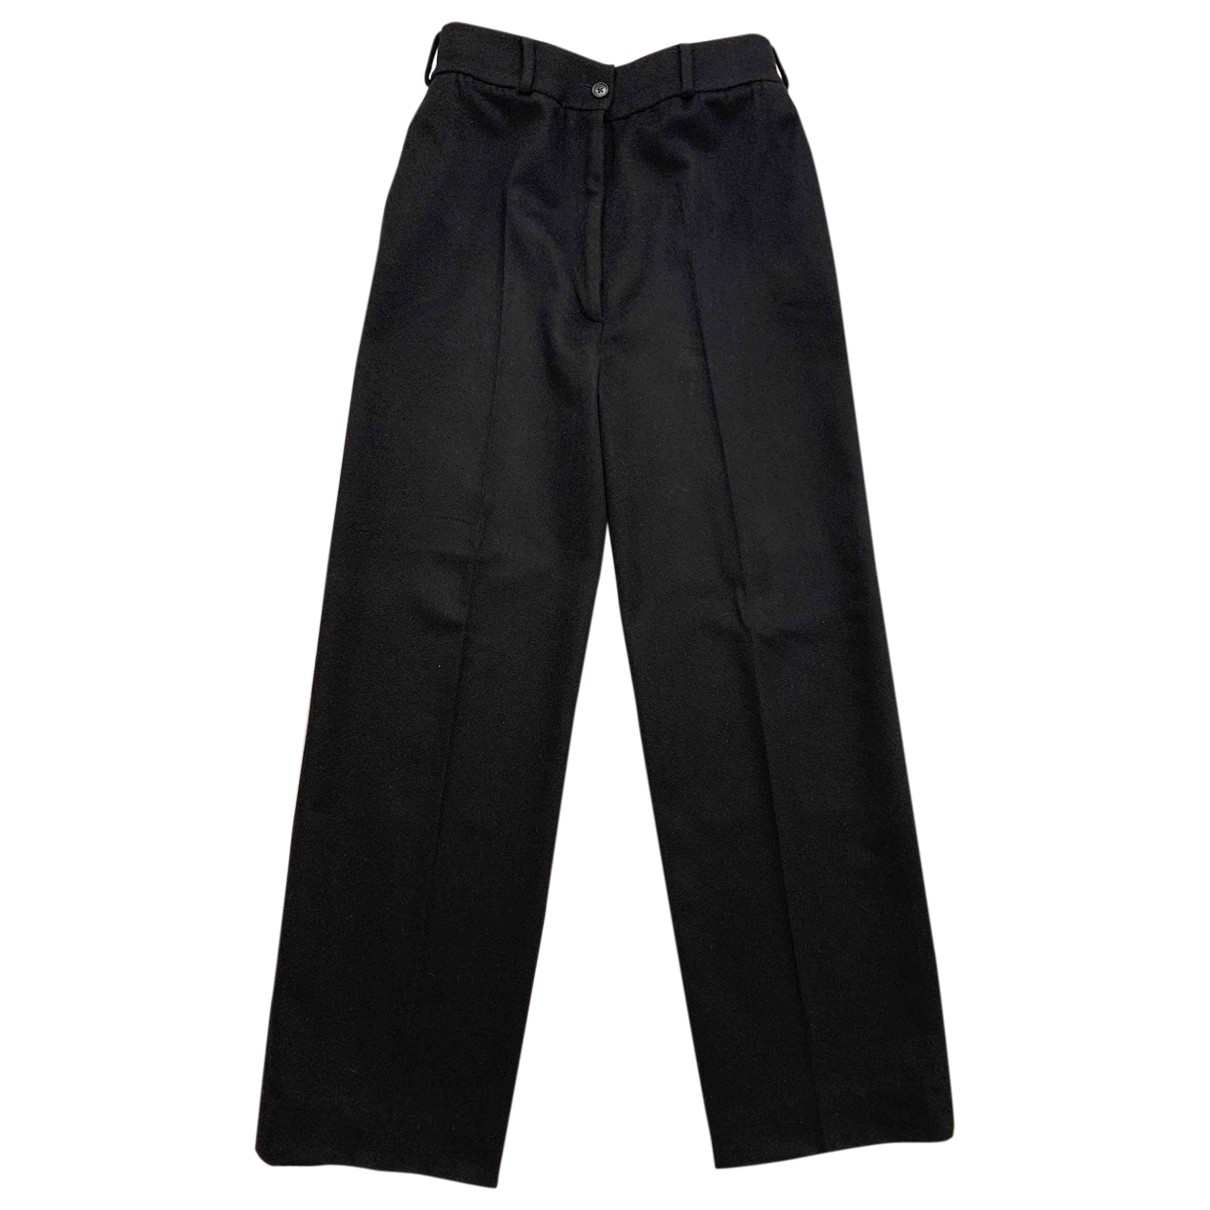 Lanvin \N Black Cashmere Trousers for Women 40 FR